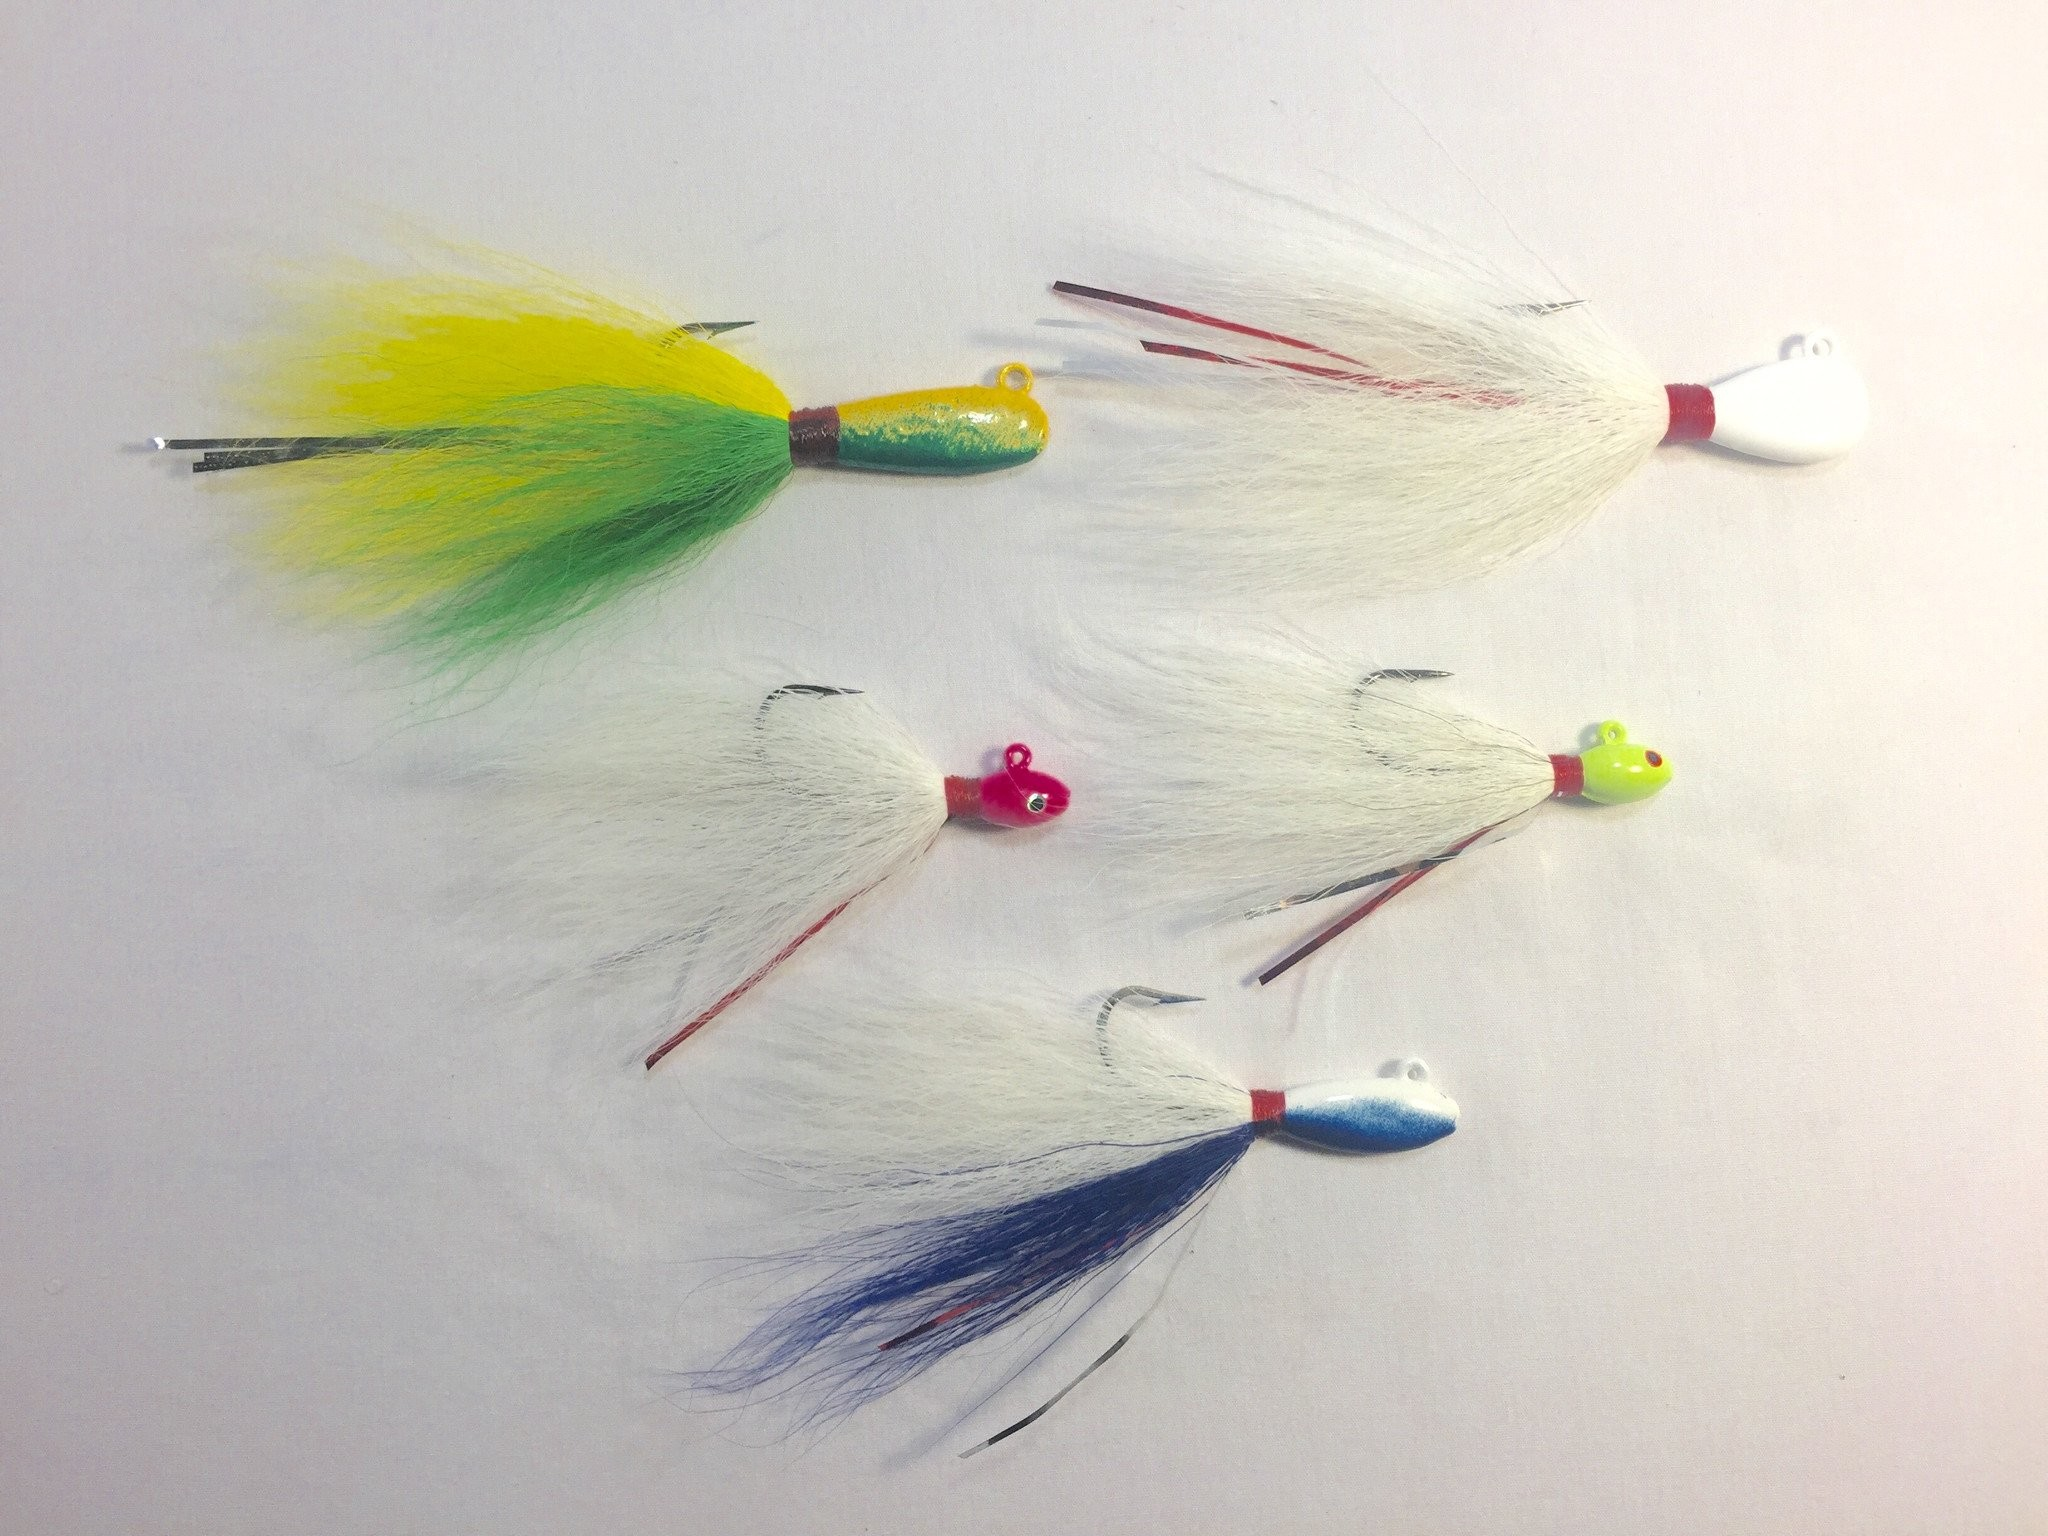 … genuine bucktail, and extremely durable powder coated head finishes.  These jigs are designed to be tough enough to withstand commercial fishing.